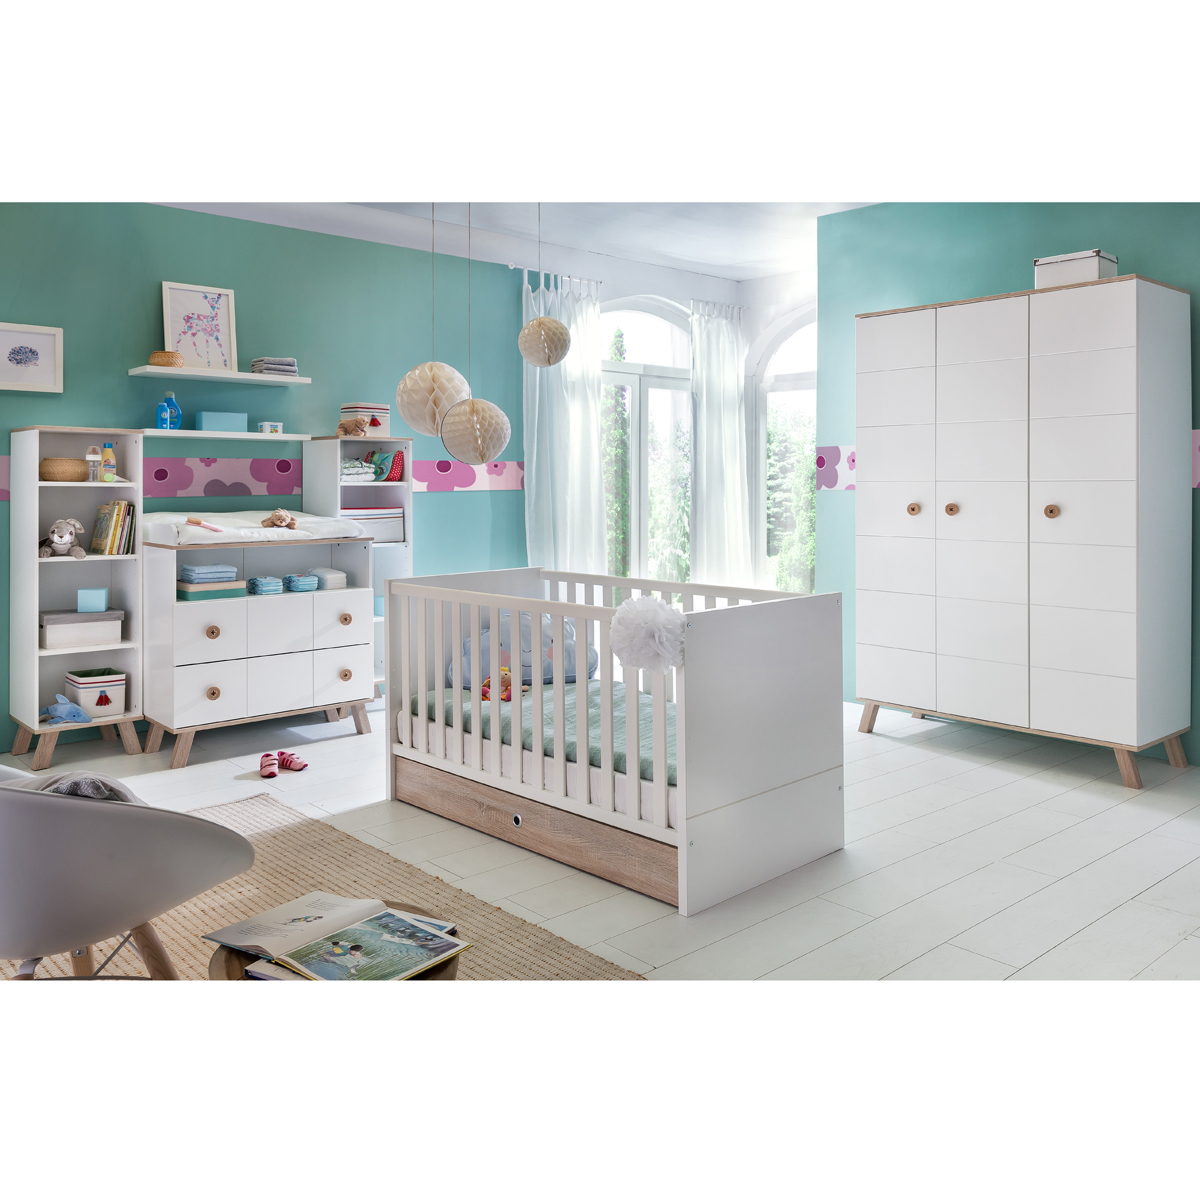 babyzimmer set billu in alpinwei und eiche s gerau kinderzimmer ebay. Black Bedroom Furniture Sets. Home Design Ideas